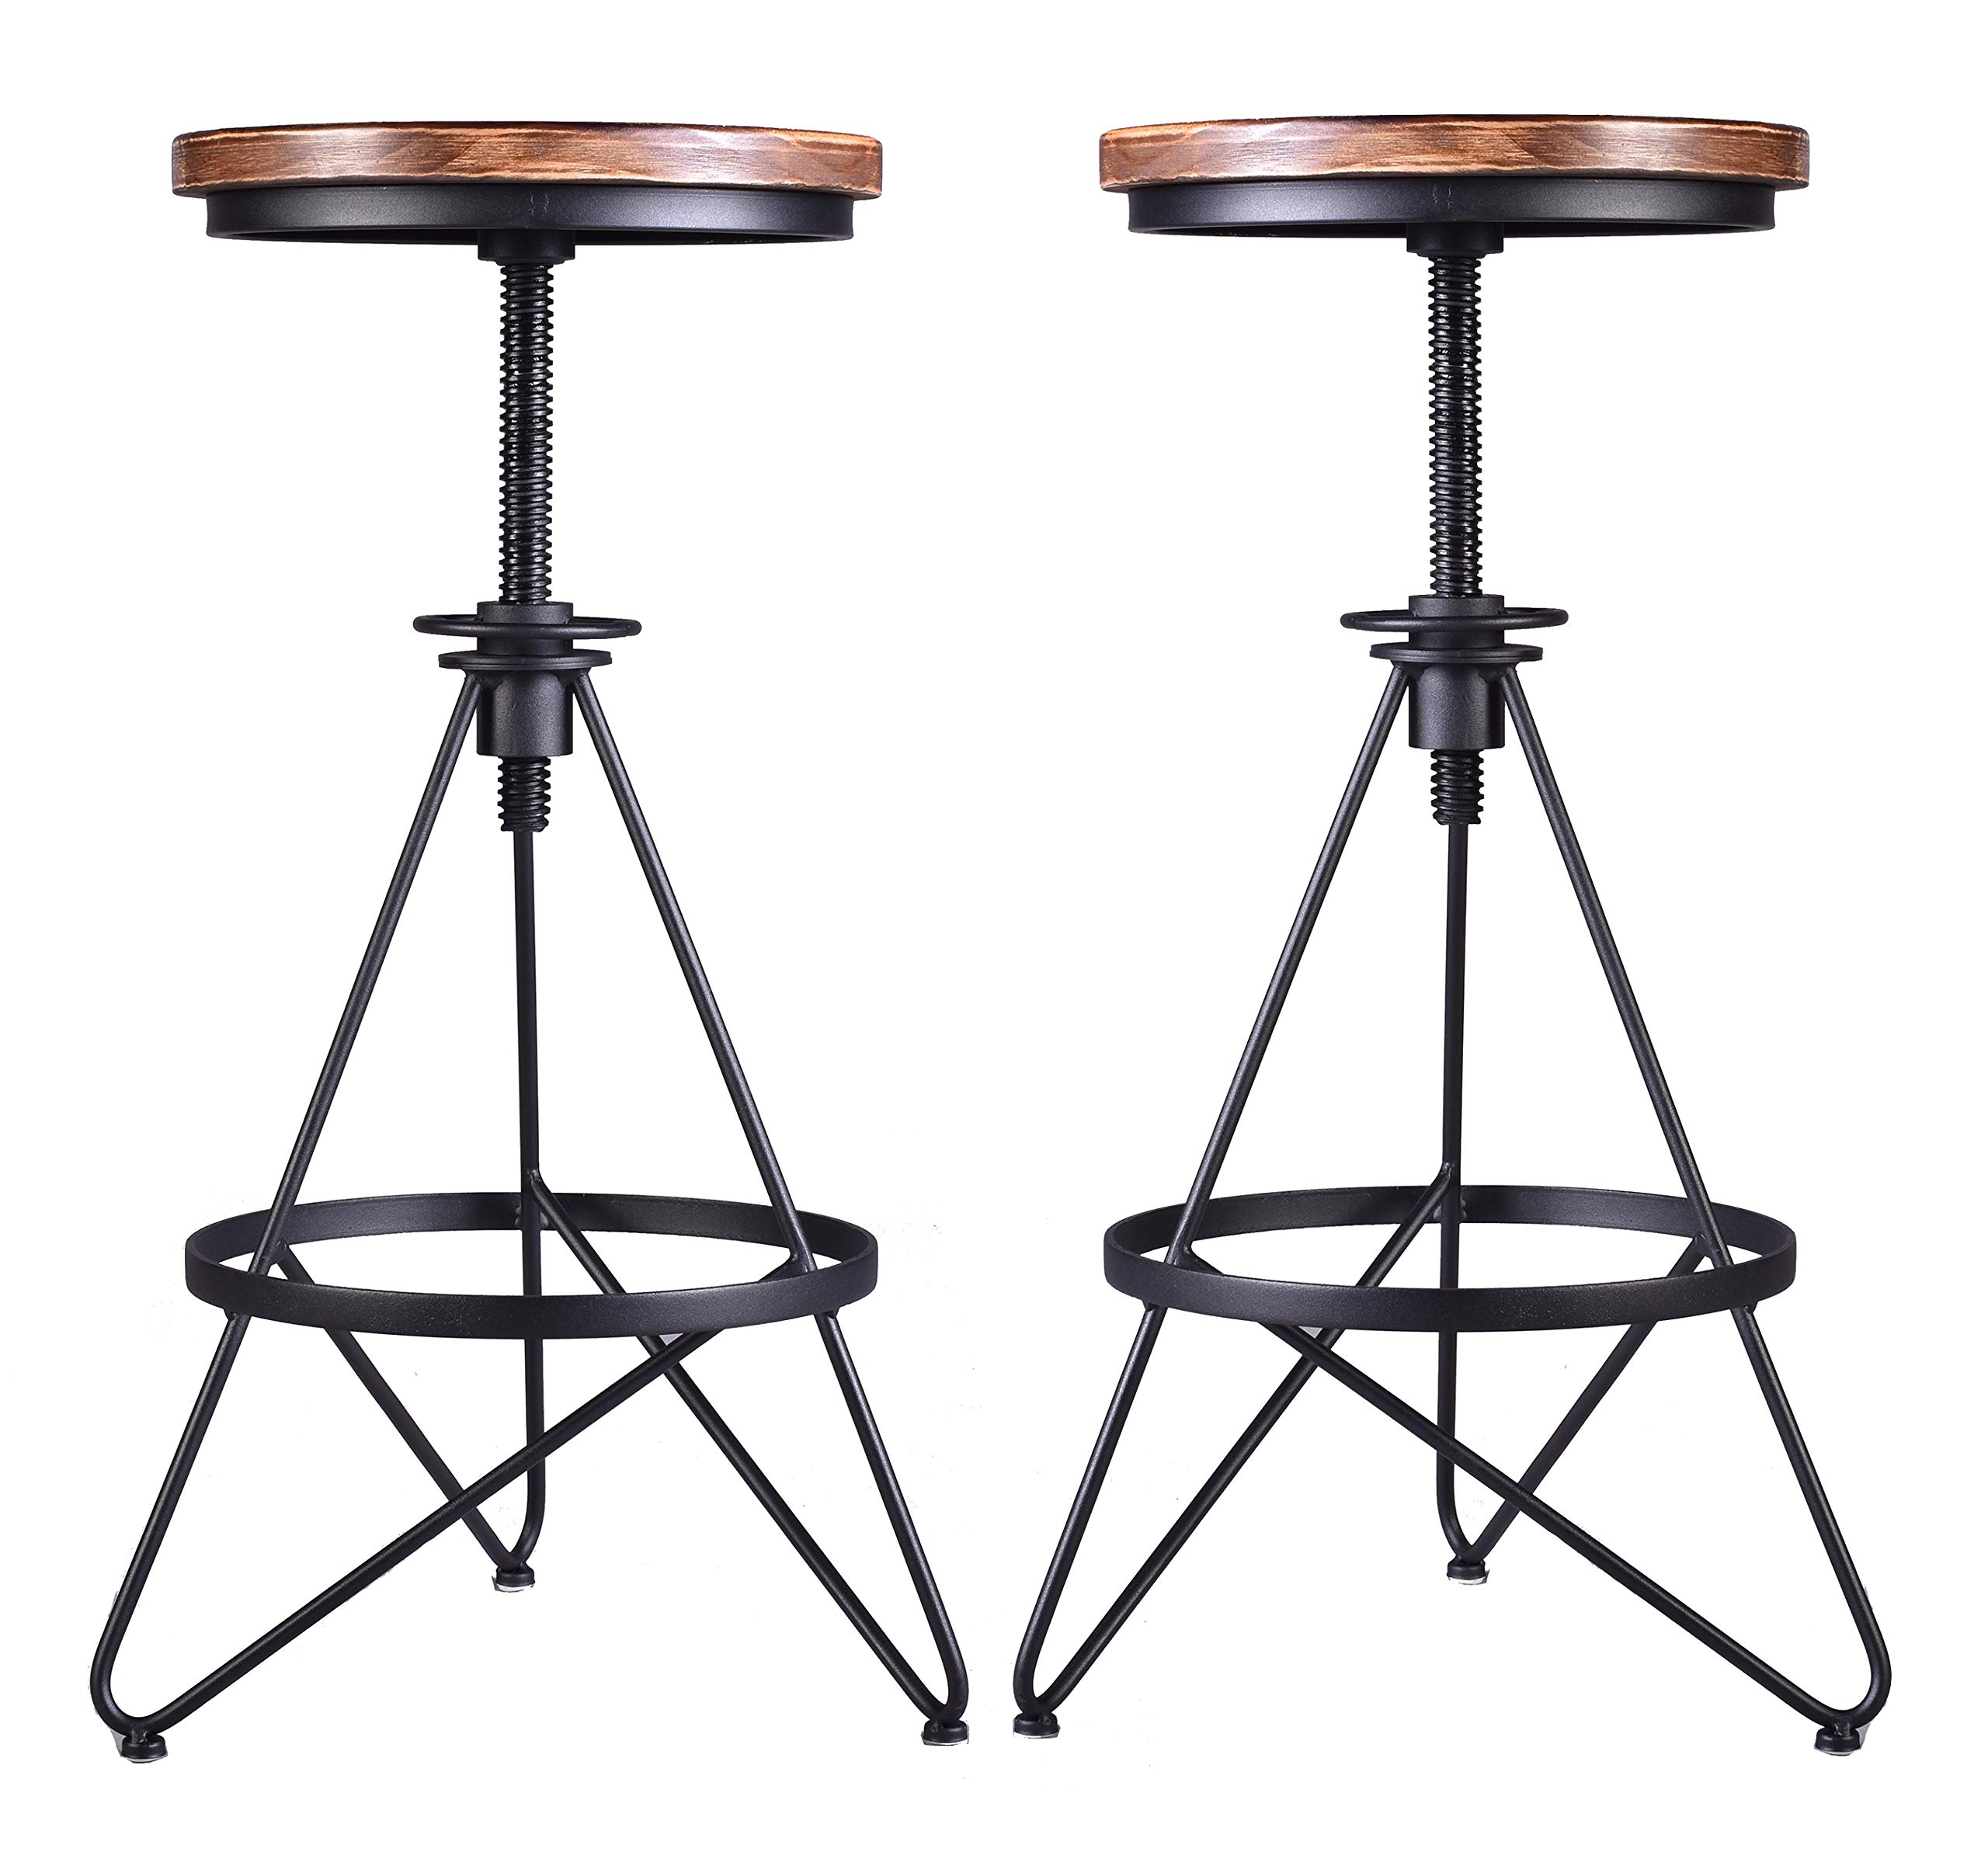 Set Of 2 Industrial Bar Stool Vintage Adjustable Swivel Stool Wood Metal Stool Rustic Farmhouse Bar Stool Counter Height Pub Height Extra Tall Stool Cast Iron 24 30 Inch Backless Fully Assembled Buy Online In India At Desertcart